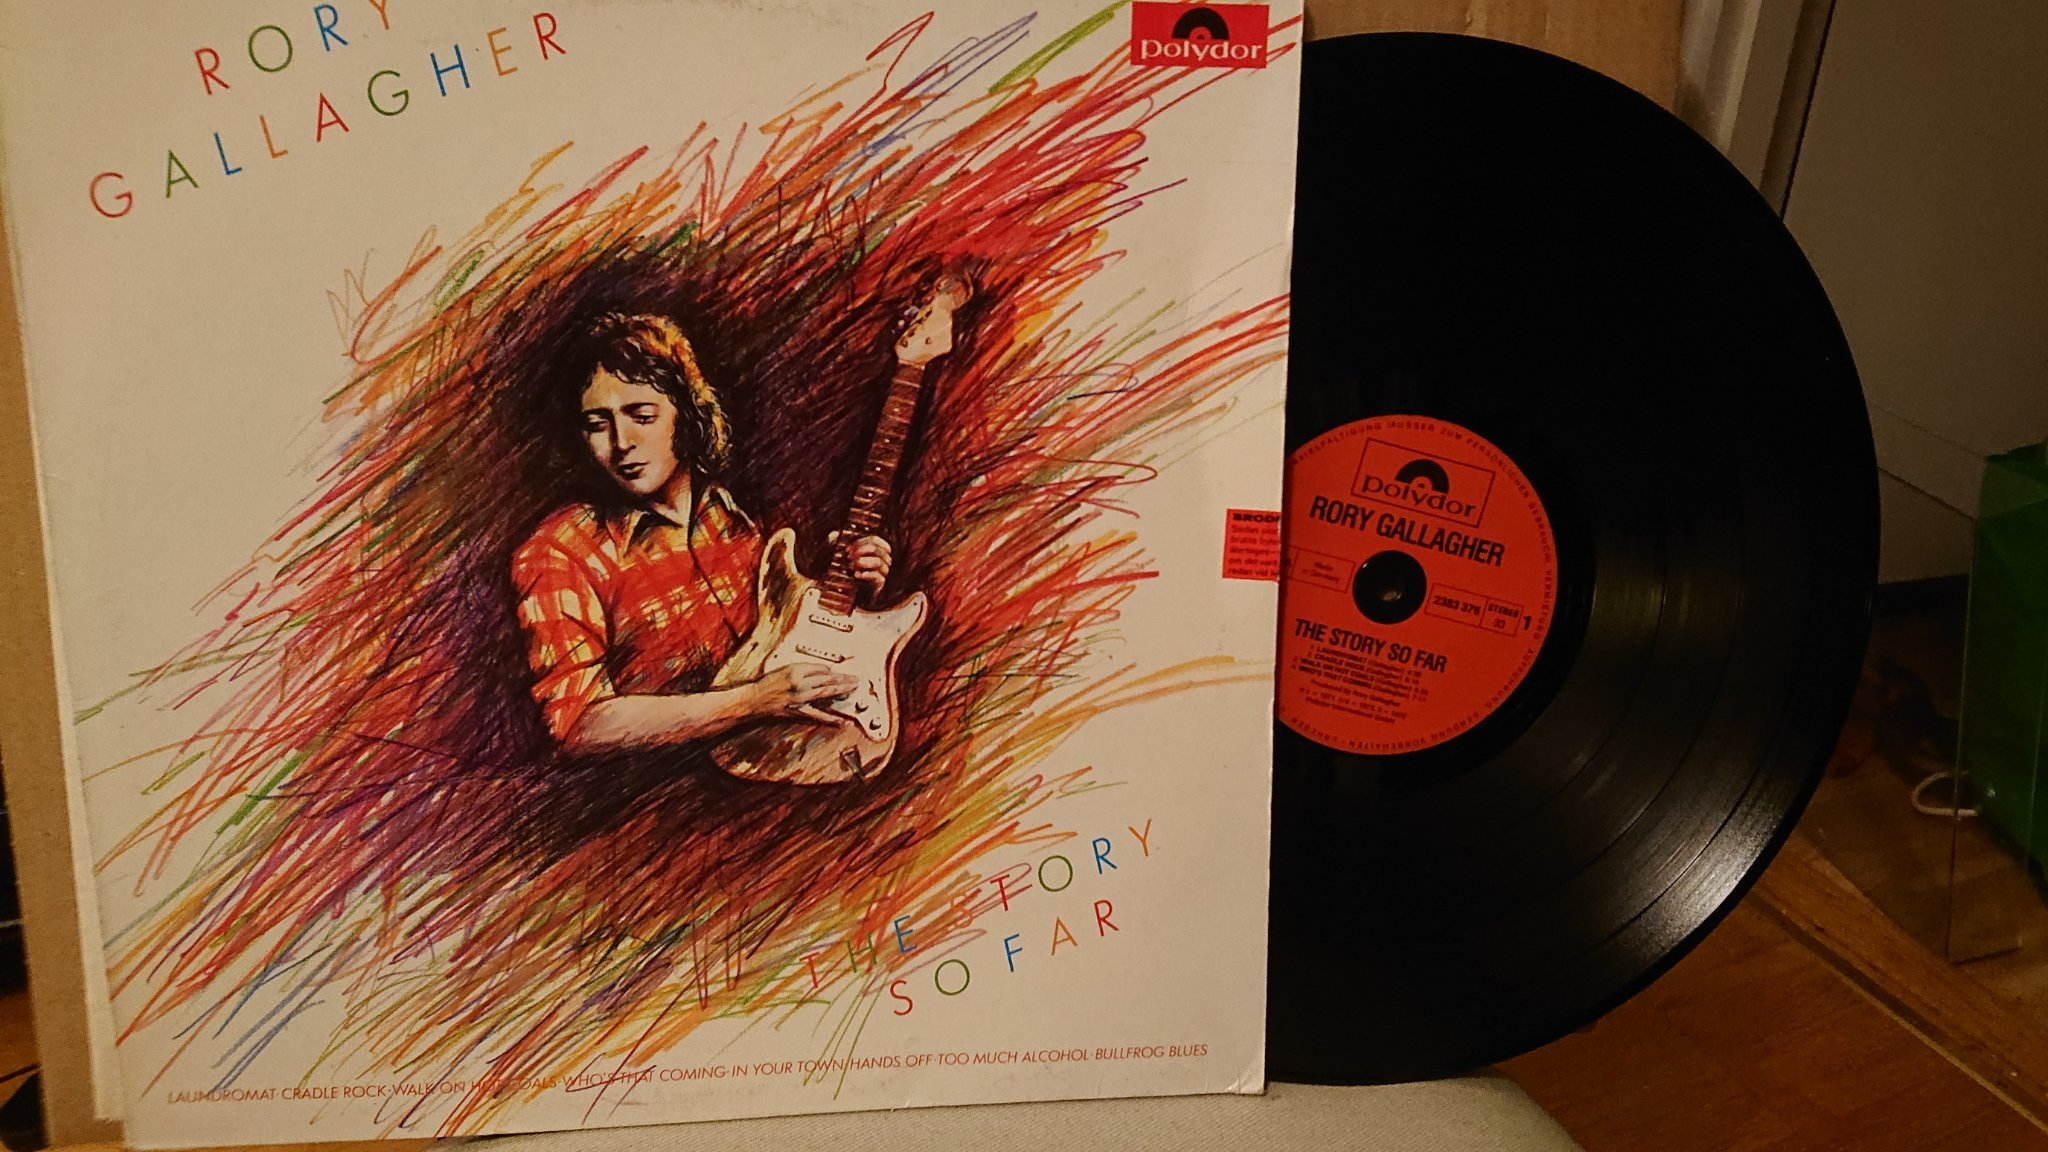 Rory Gallagher - The Story So Far 1975 (Compilation)